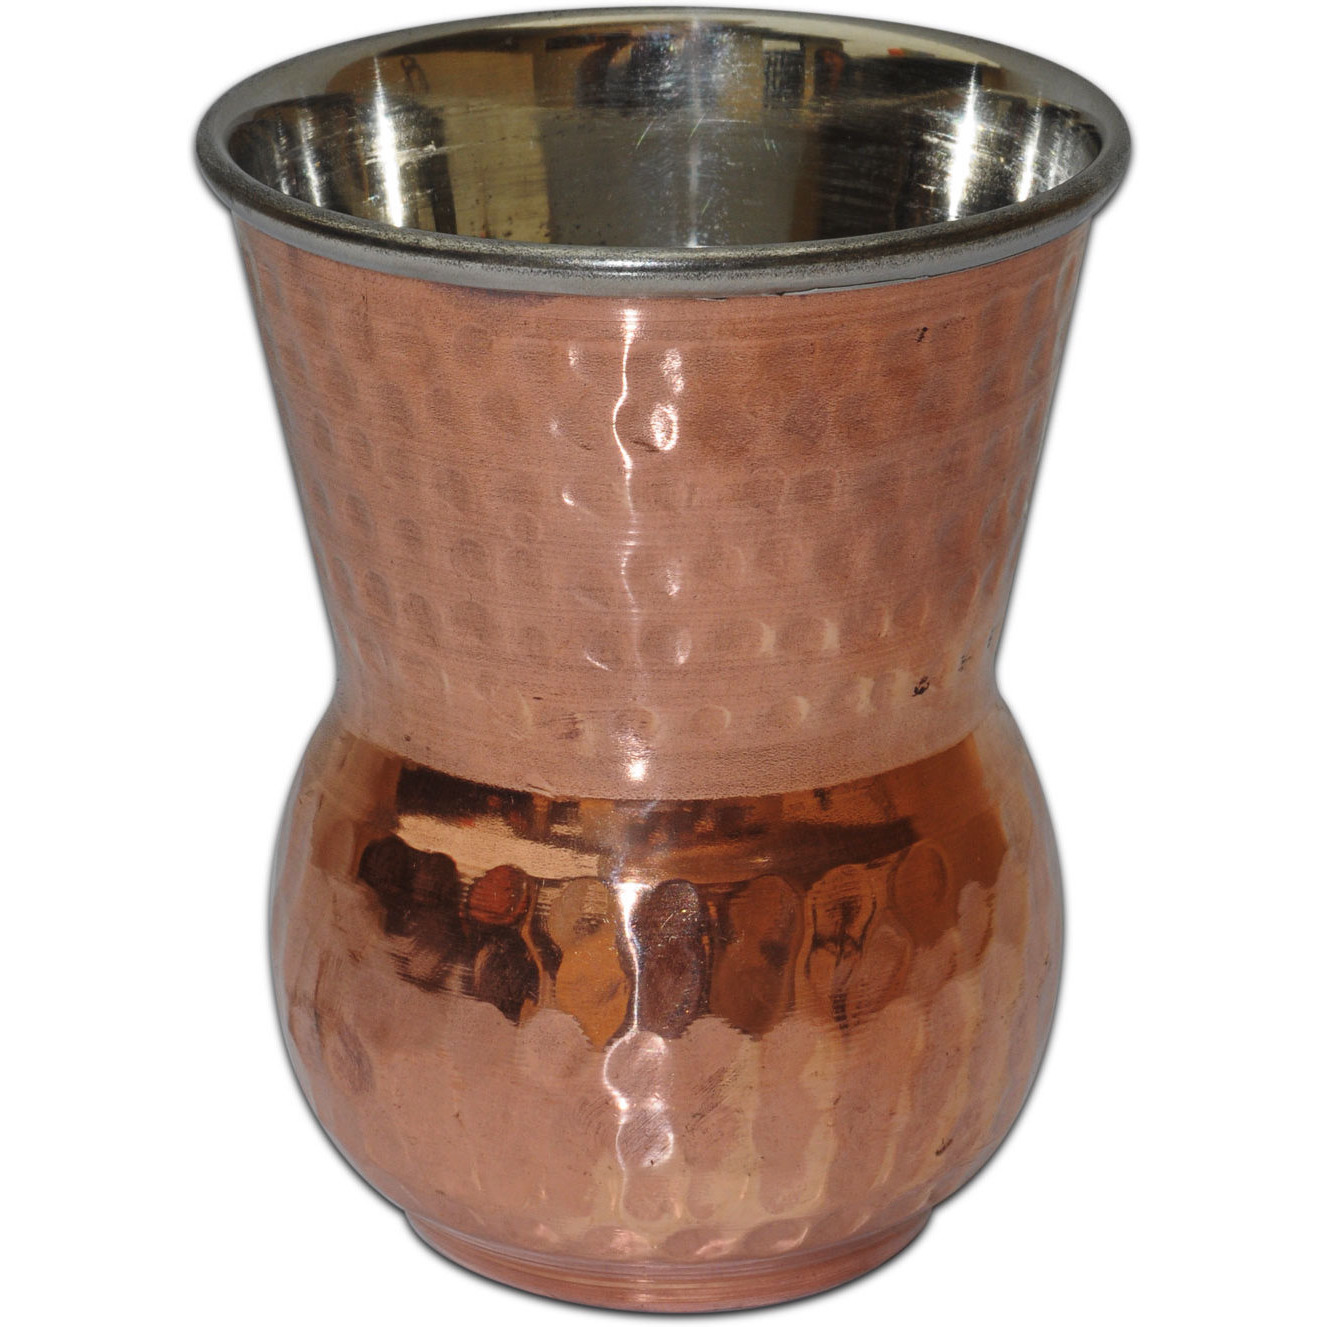 Set of 6 - Prisha India Craft B. Copper Muglai Matka Glass Inside Stainless Steel Hammered Style Drinkware Tumbler Handmade Copper Cups - Traveller's Copper Mug